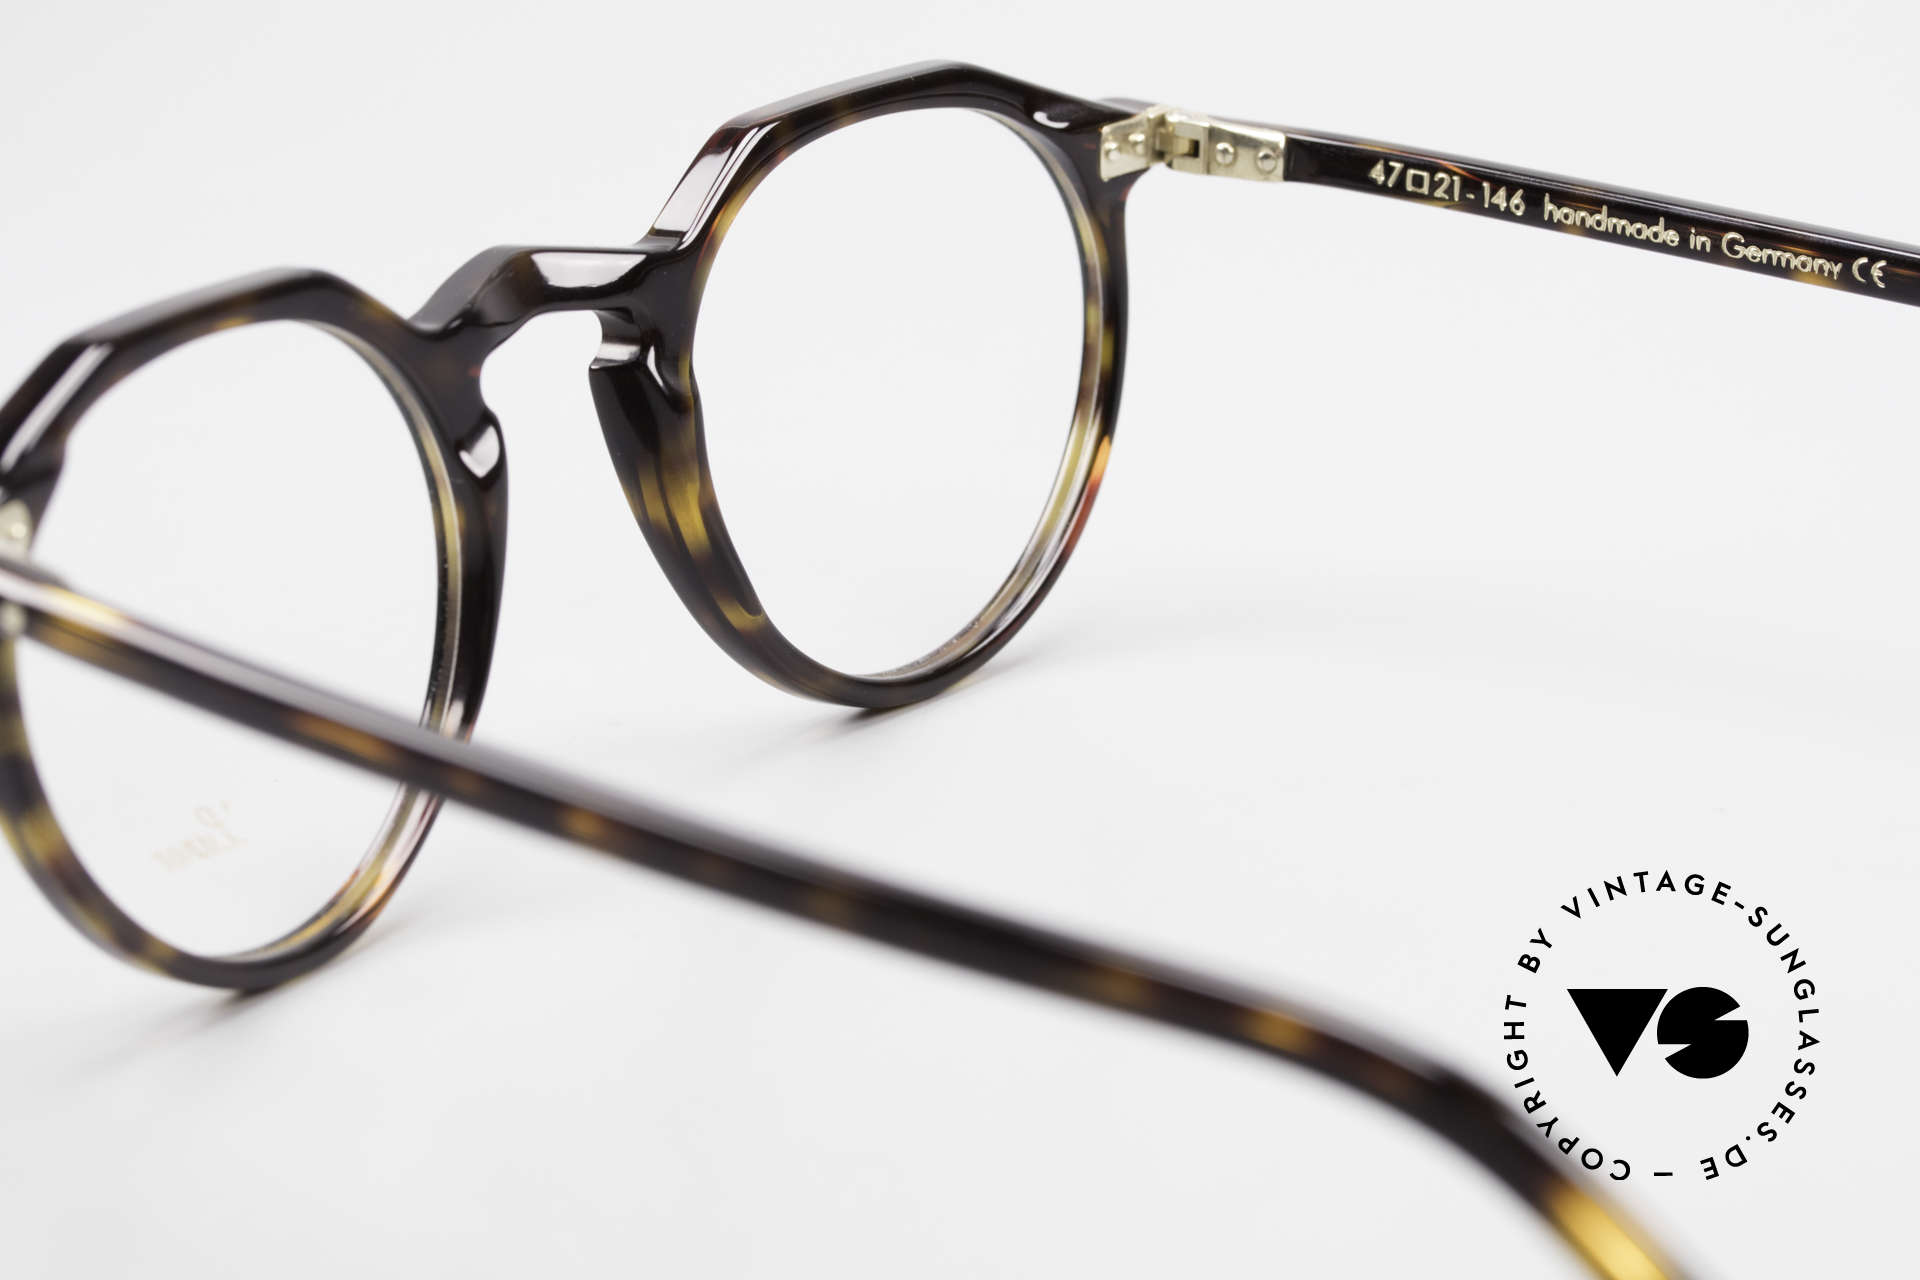 Lunor A5 237 Classic Timeless Panto Frame, Size: medium, Made for Men and Women